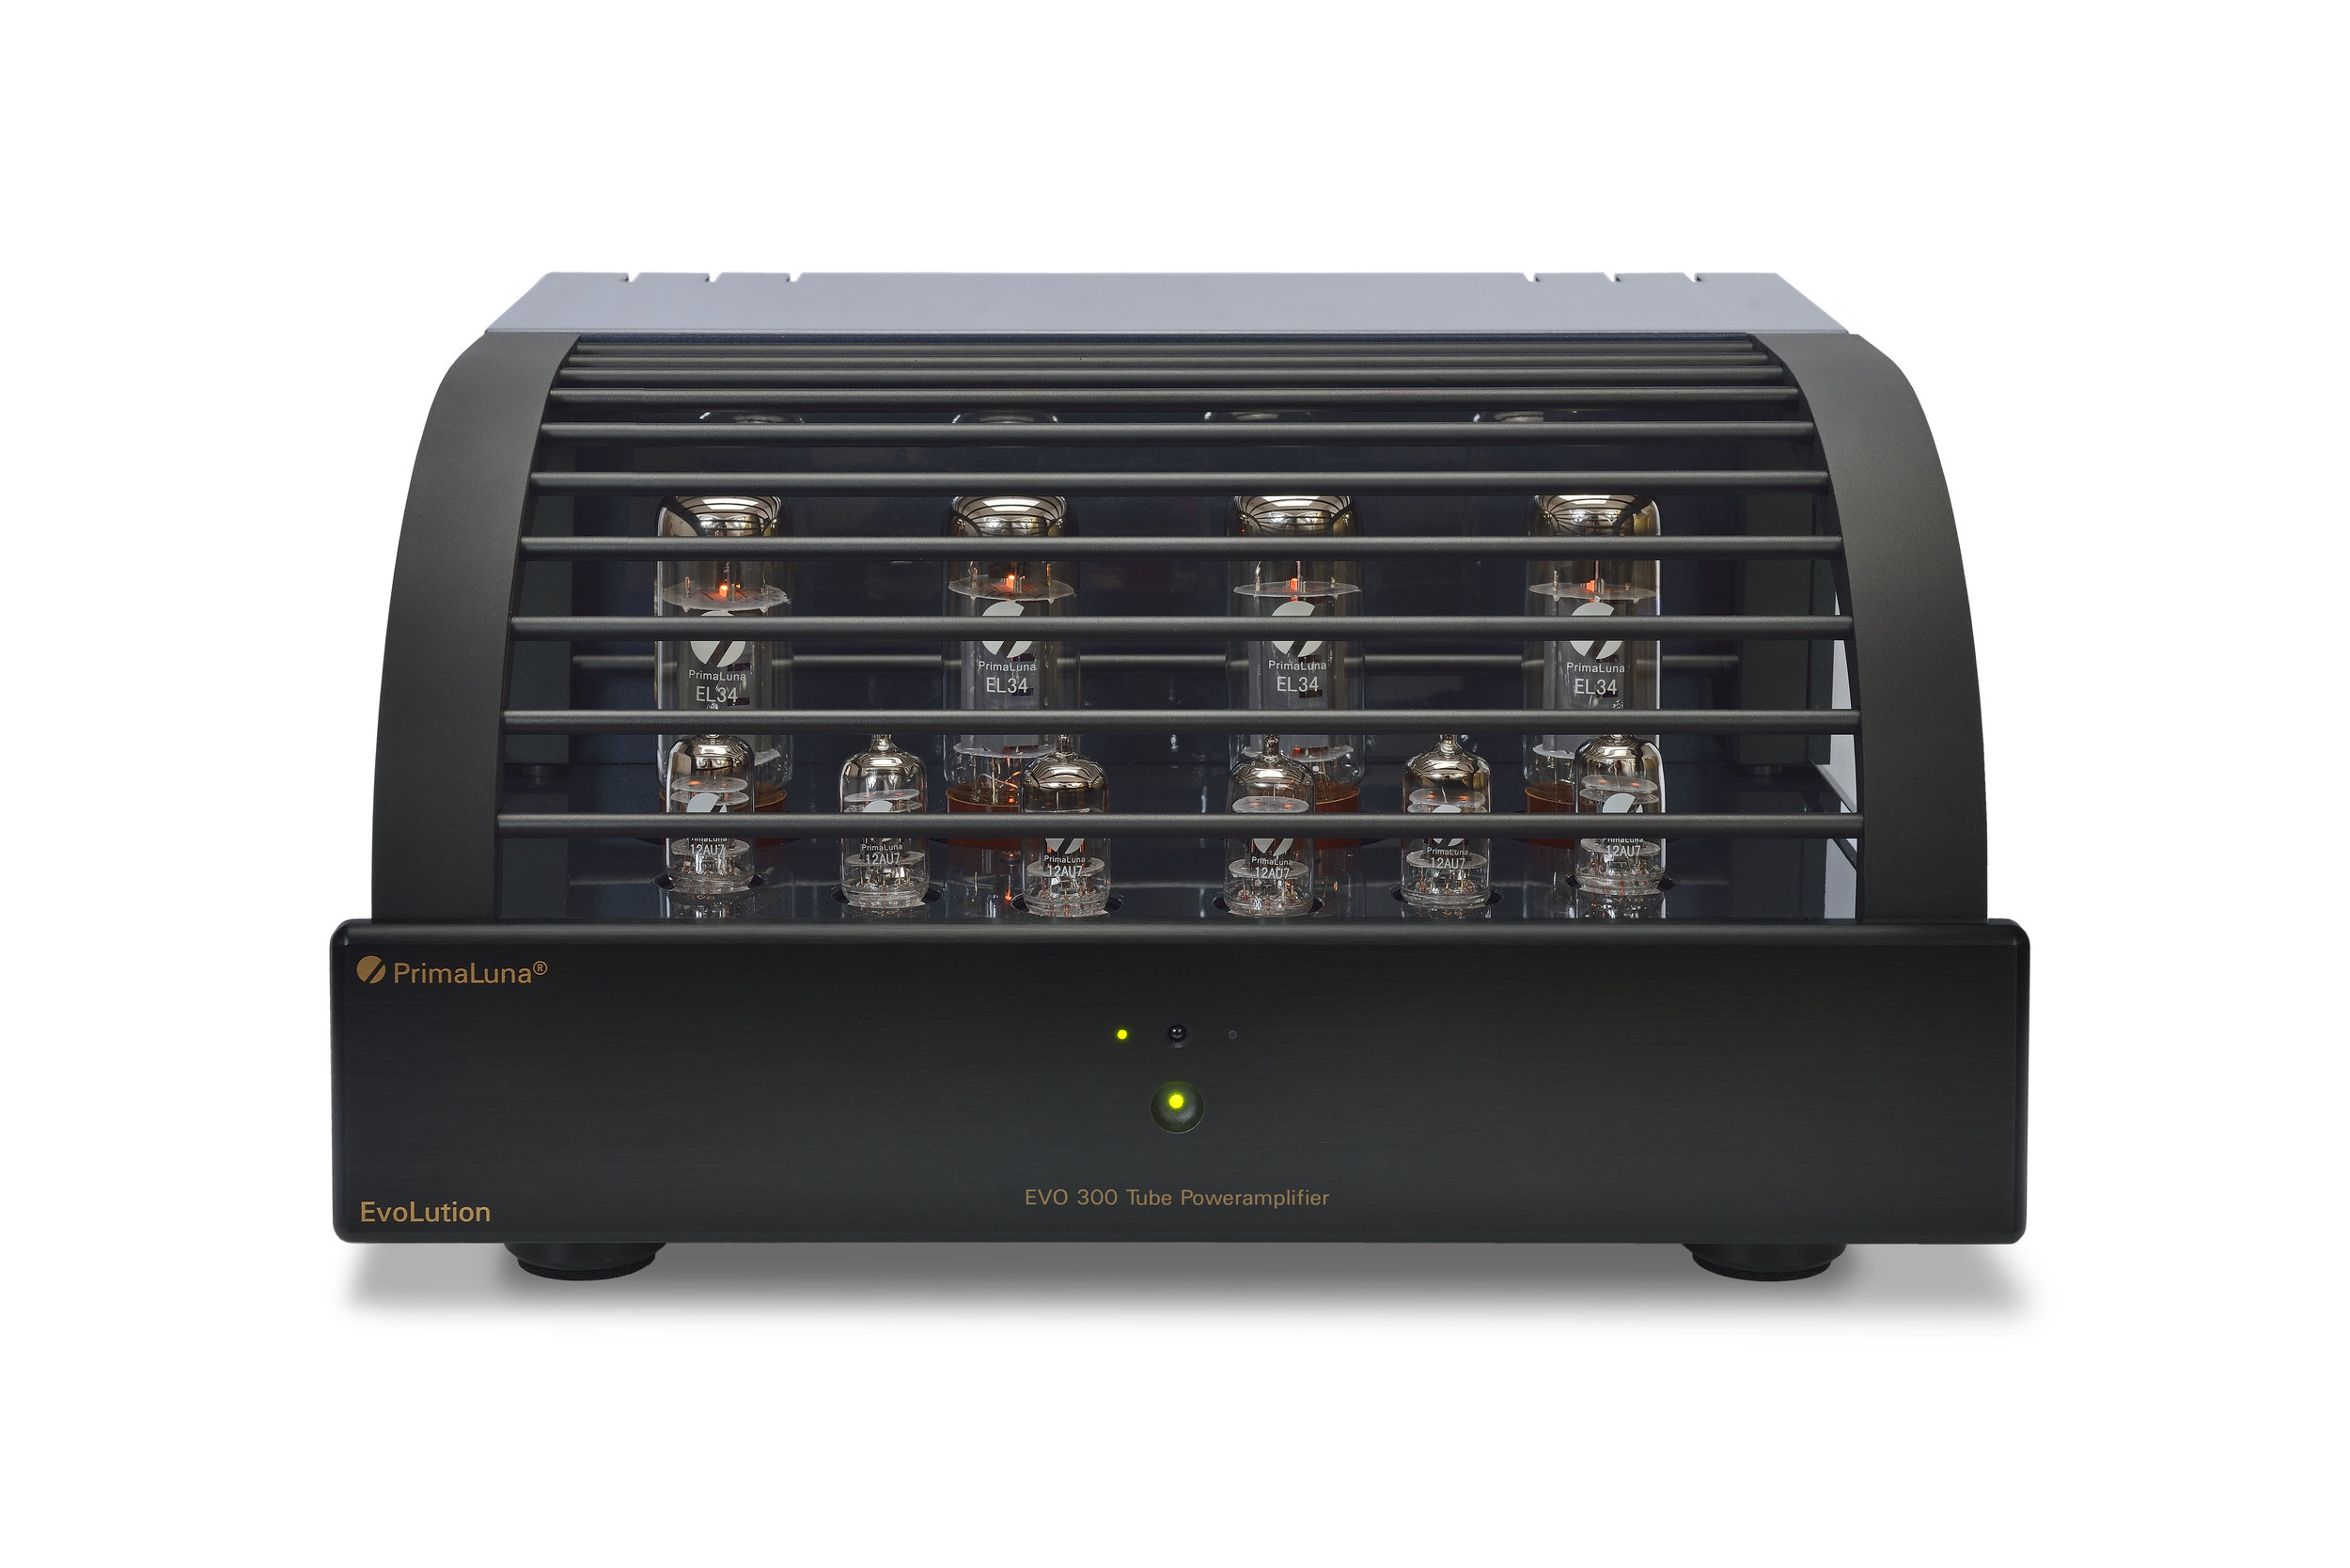 022b - PrimaLuna Evo 300 Tube Poweramplifier - black - white background.jpg